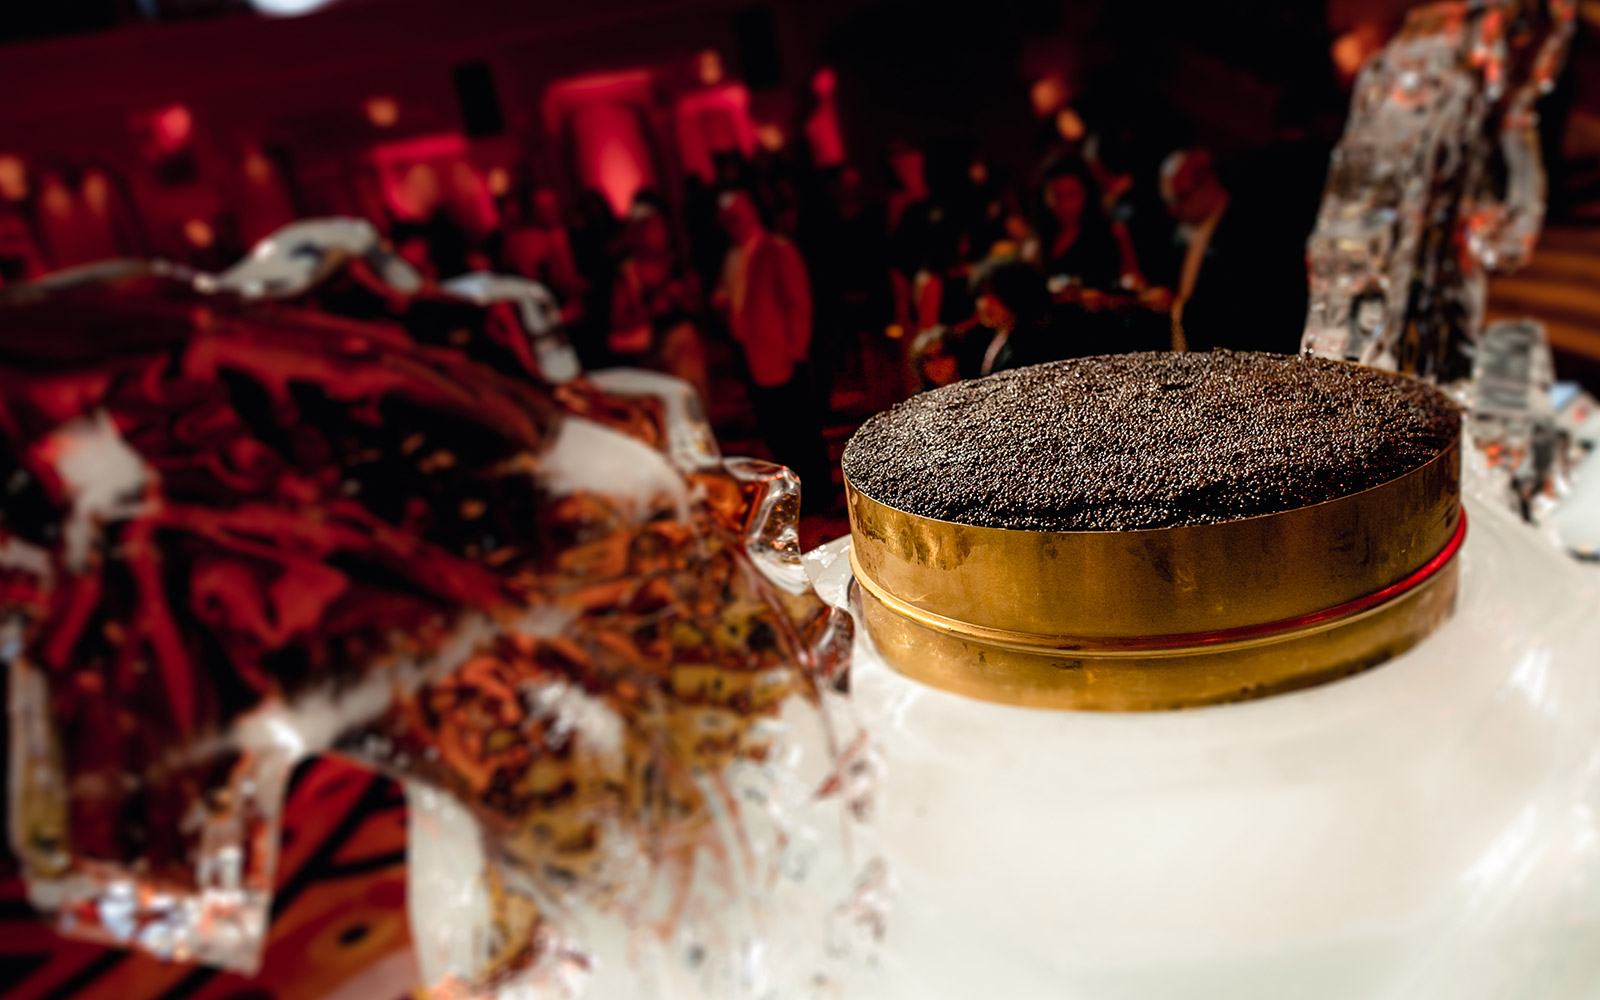 World's largest caviar in Dubai